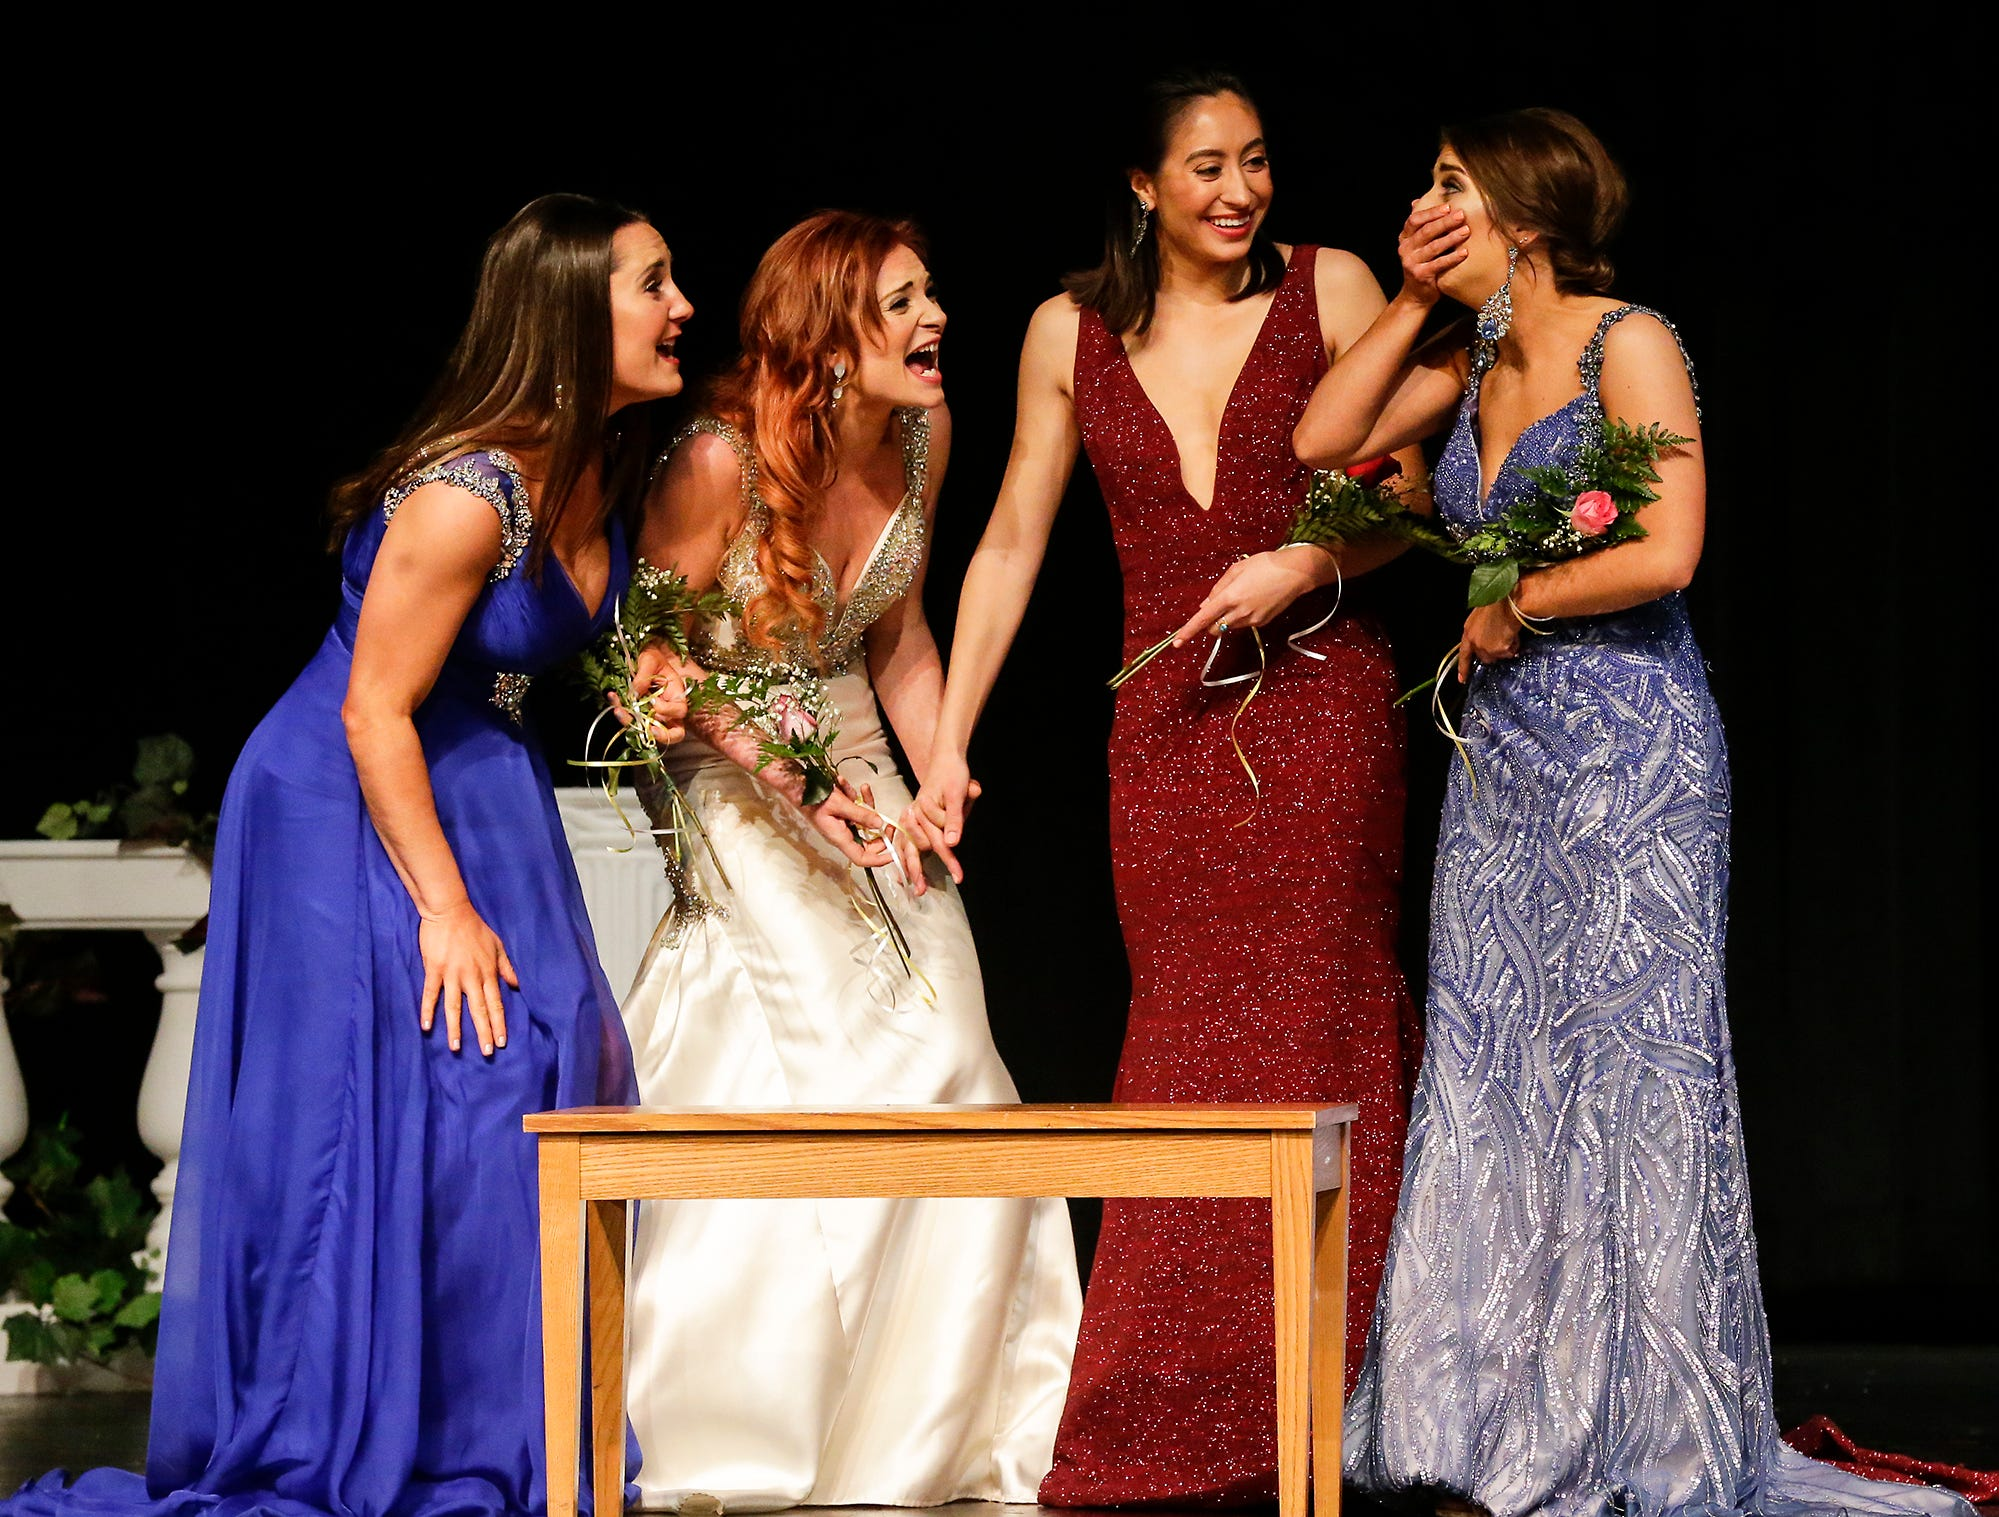 Miss Fond du Lac contestants Gabbi Hanlon, Madison Supple, Sophia Vaca and Amanda McClelland react as McClelland is announced the 2019 Miss Fond du Lac winner during the Miss Fond du Lac, Miss Wisconsin Central and Miss Fond du Lac's Outstanding Teen 2019 scholarship competitions Saturday, March 9, 2019 at the Goodrich Little Theater in Fond du Lac, Wis. Doug Raflik/USA TODAY NETWORK-Wisconsin